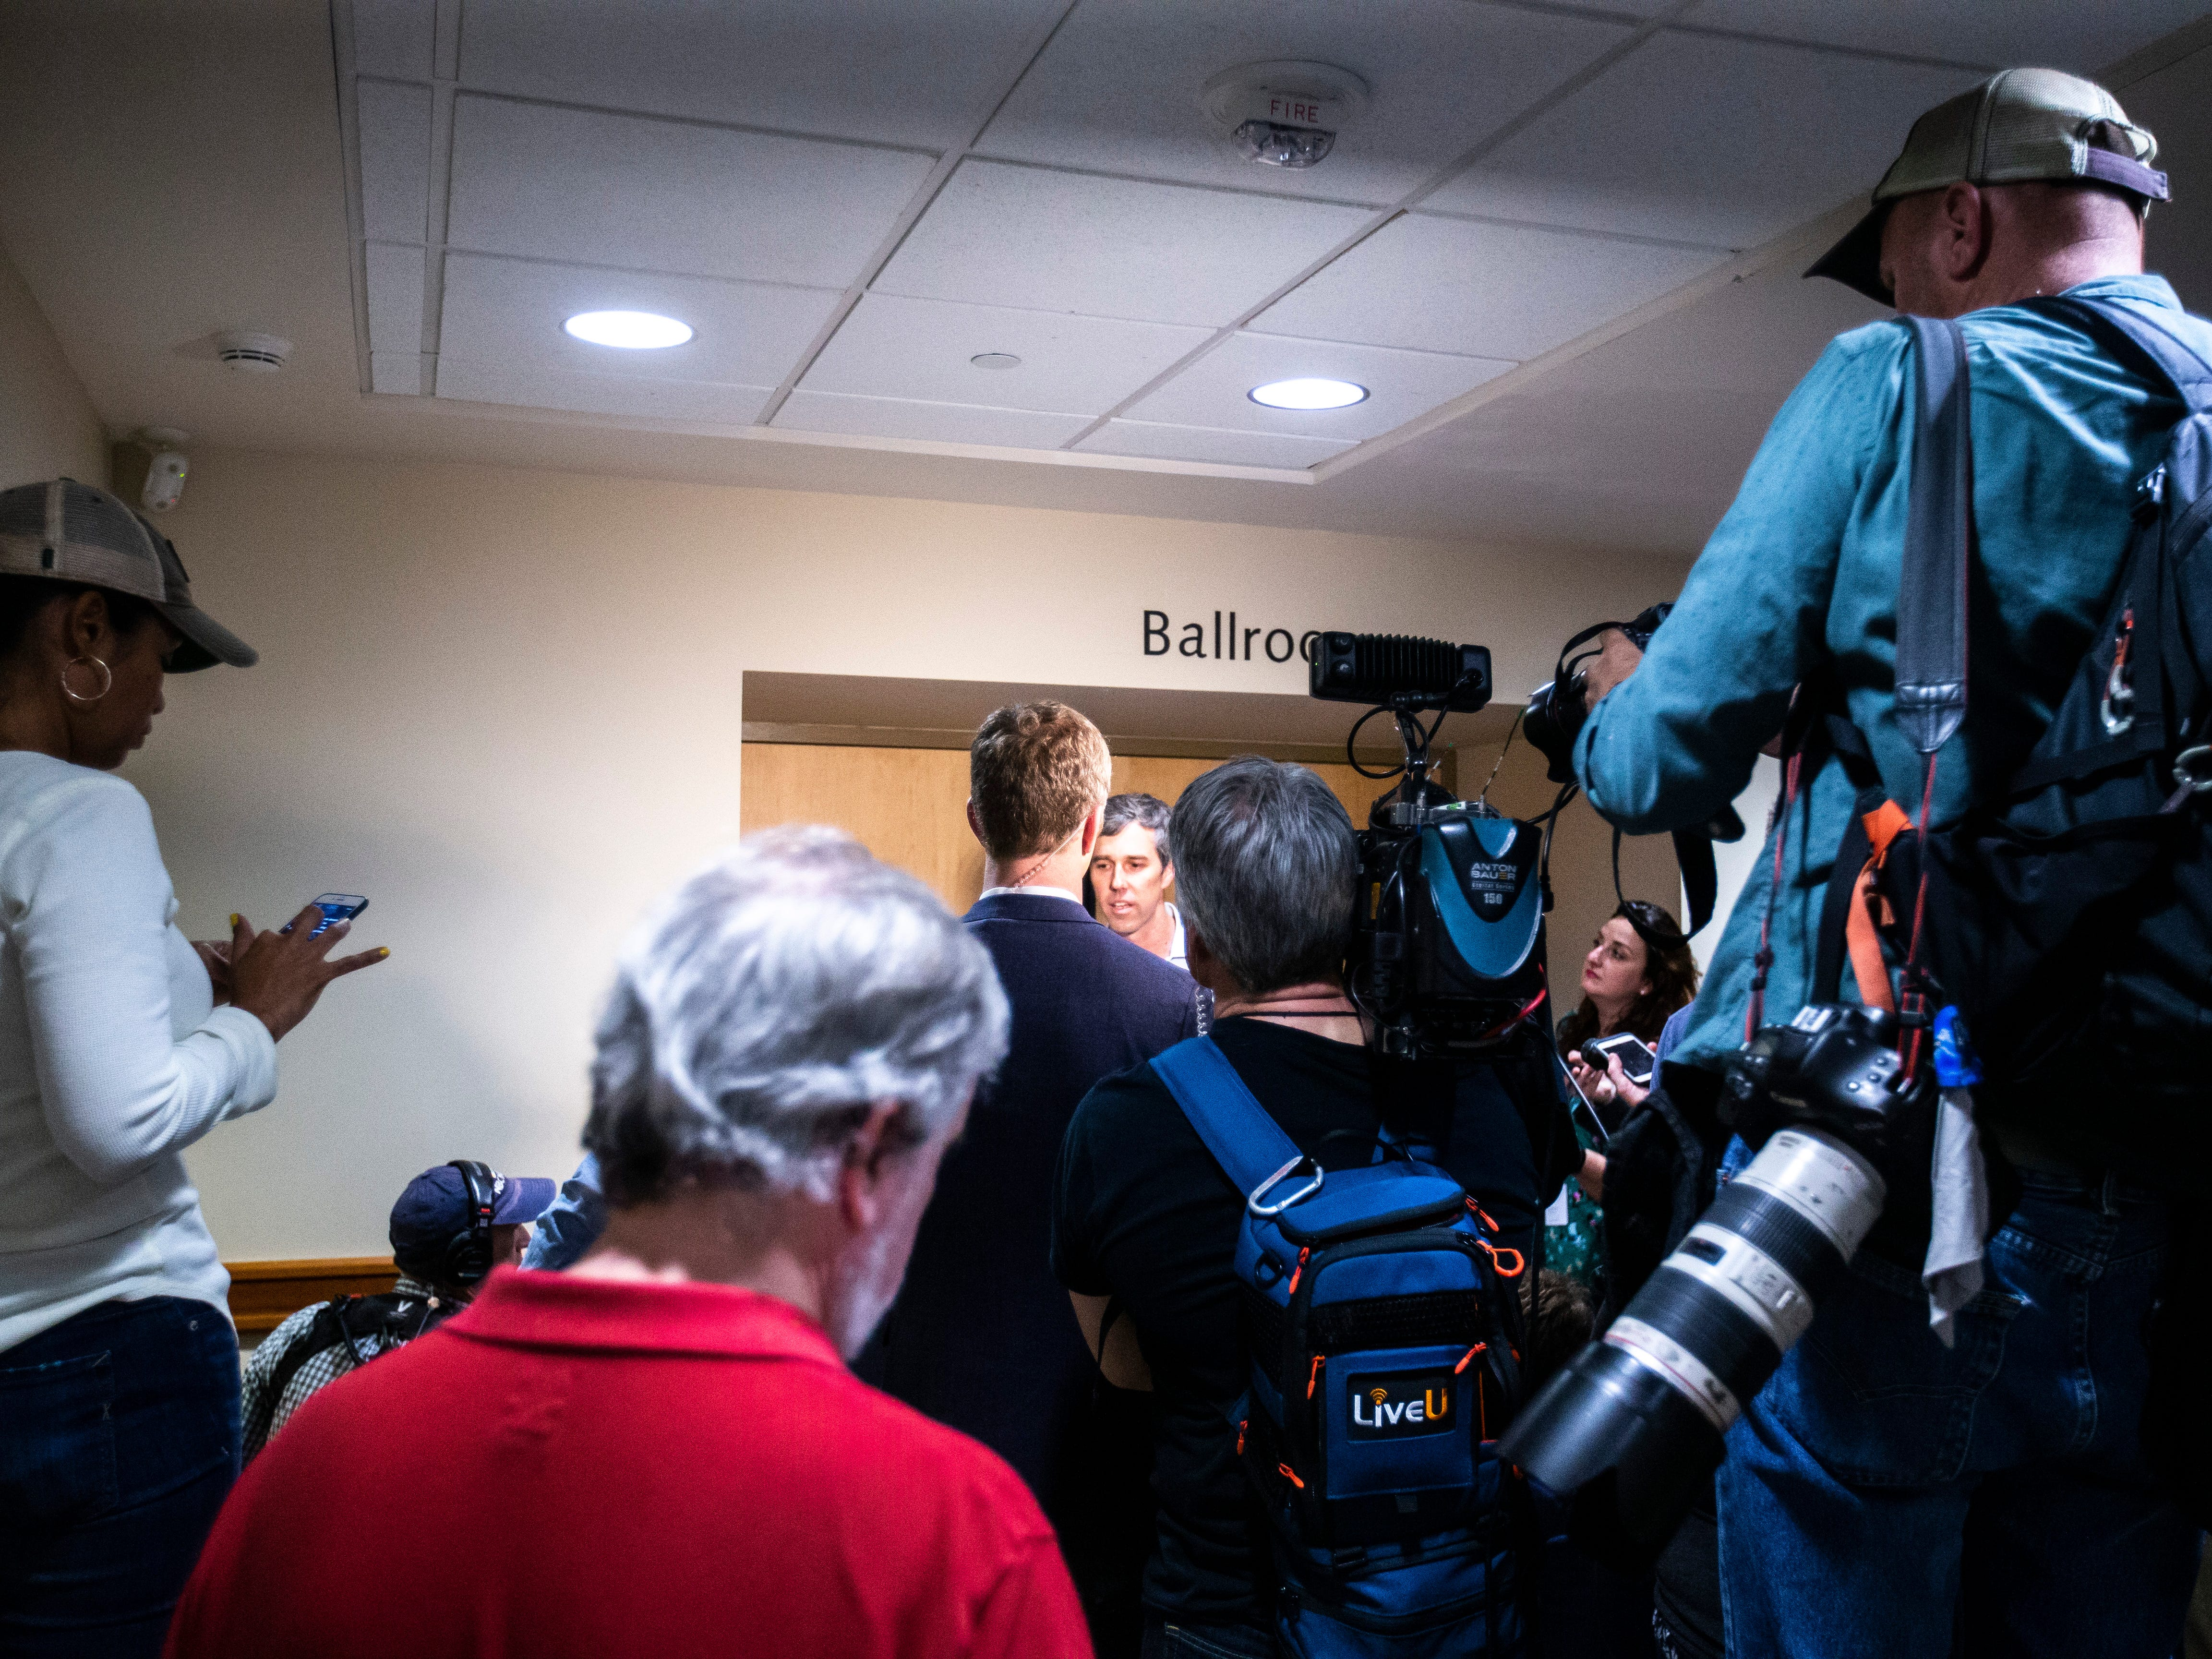 Democratic presidential candidate Beto O'Rourke of El Paso, Texas, speaks to reporters after a town hall event on Sunday, April 7, 2019, in the second floor ballroom at the Iowa Memorial Union on the University of Iowa campus in Iowa City, Iowa.